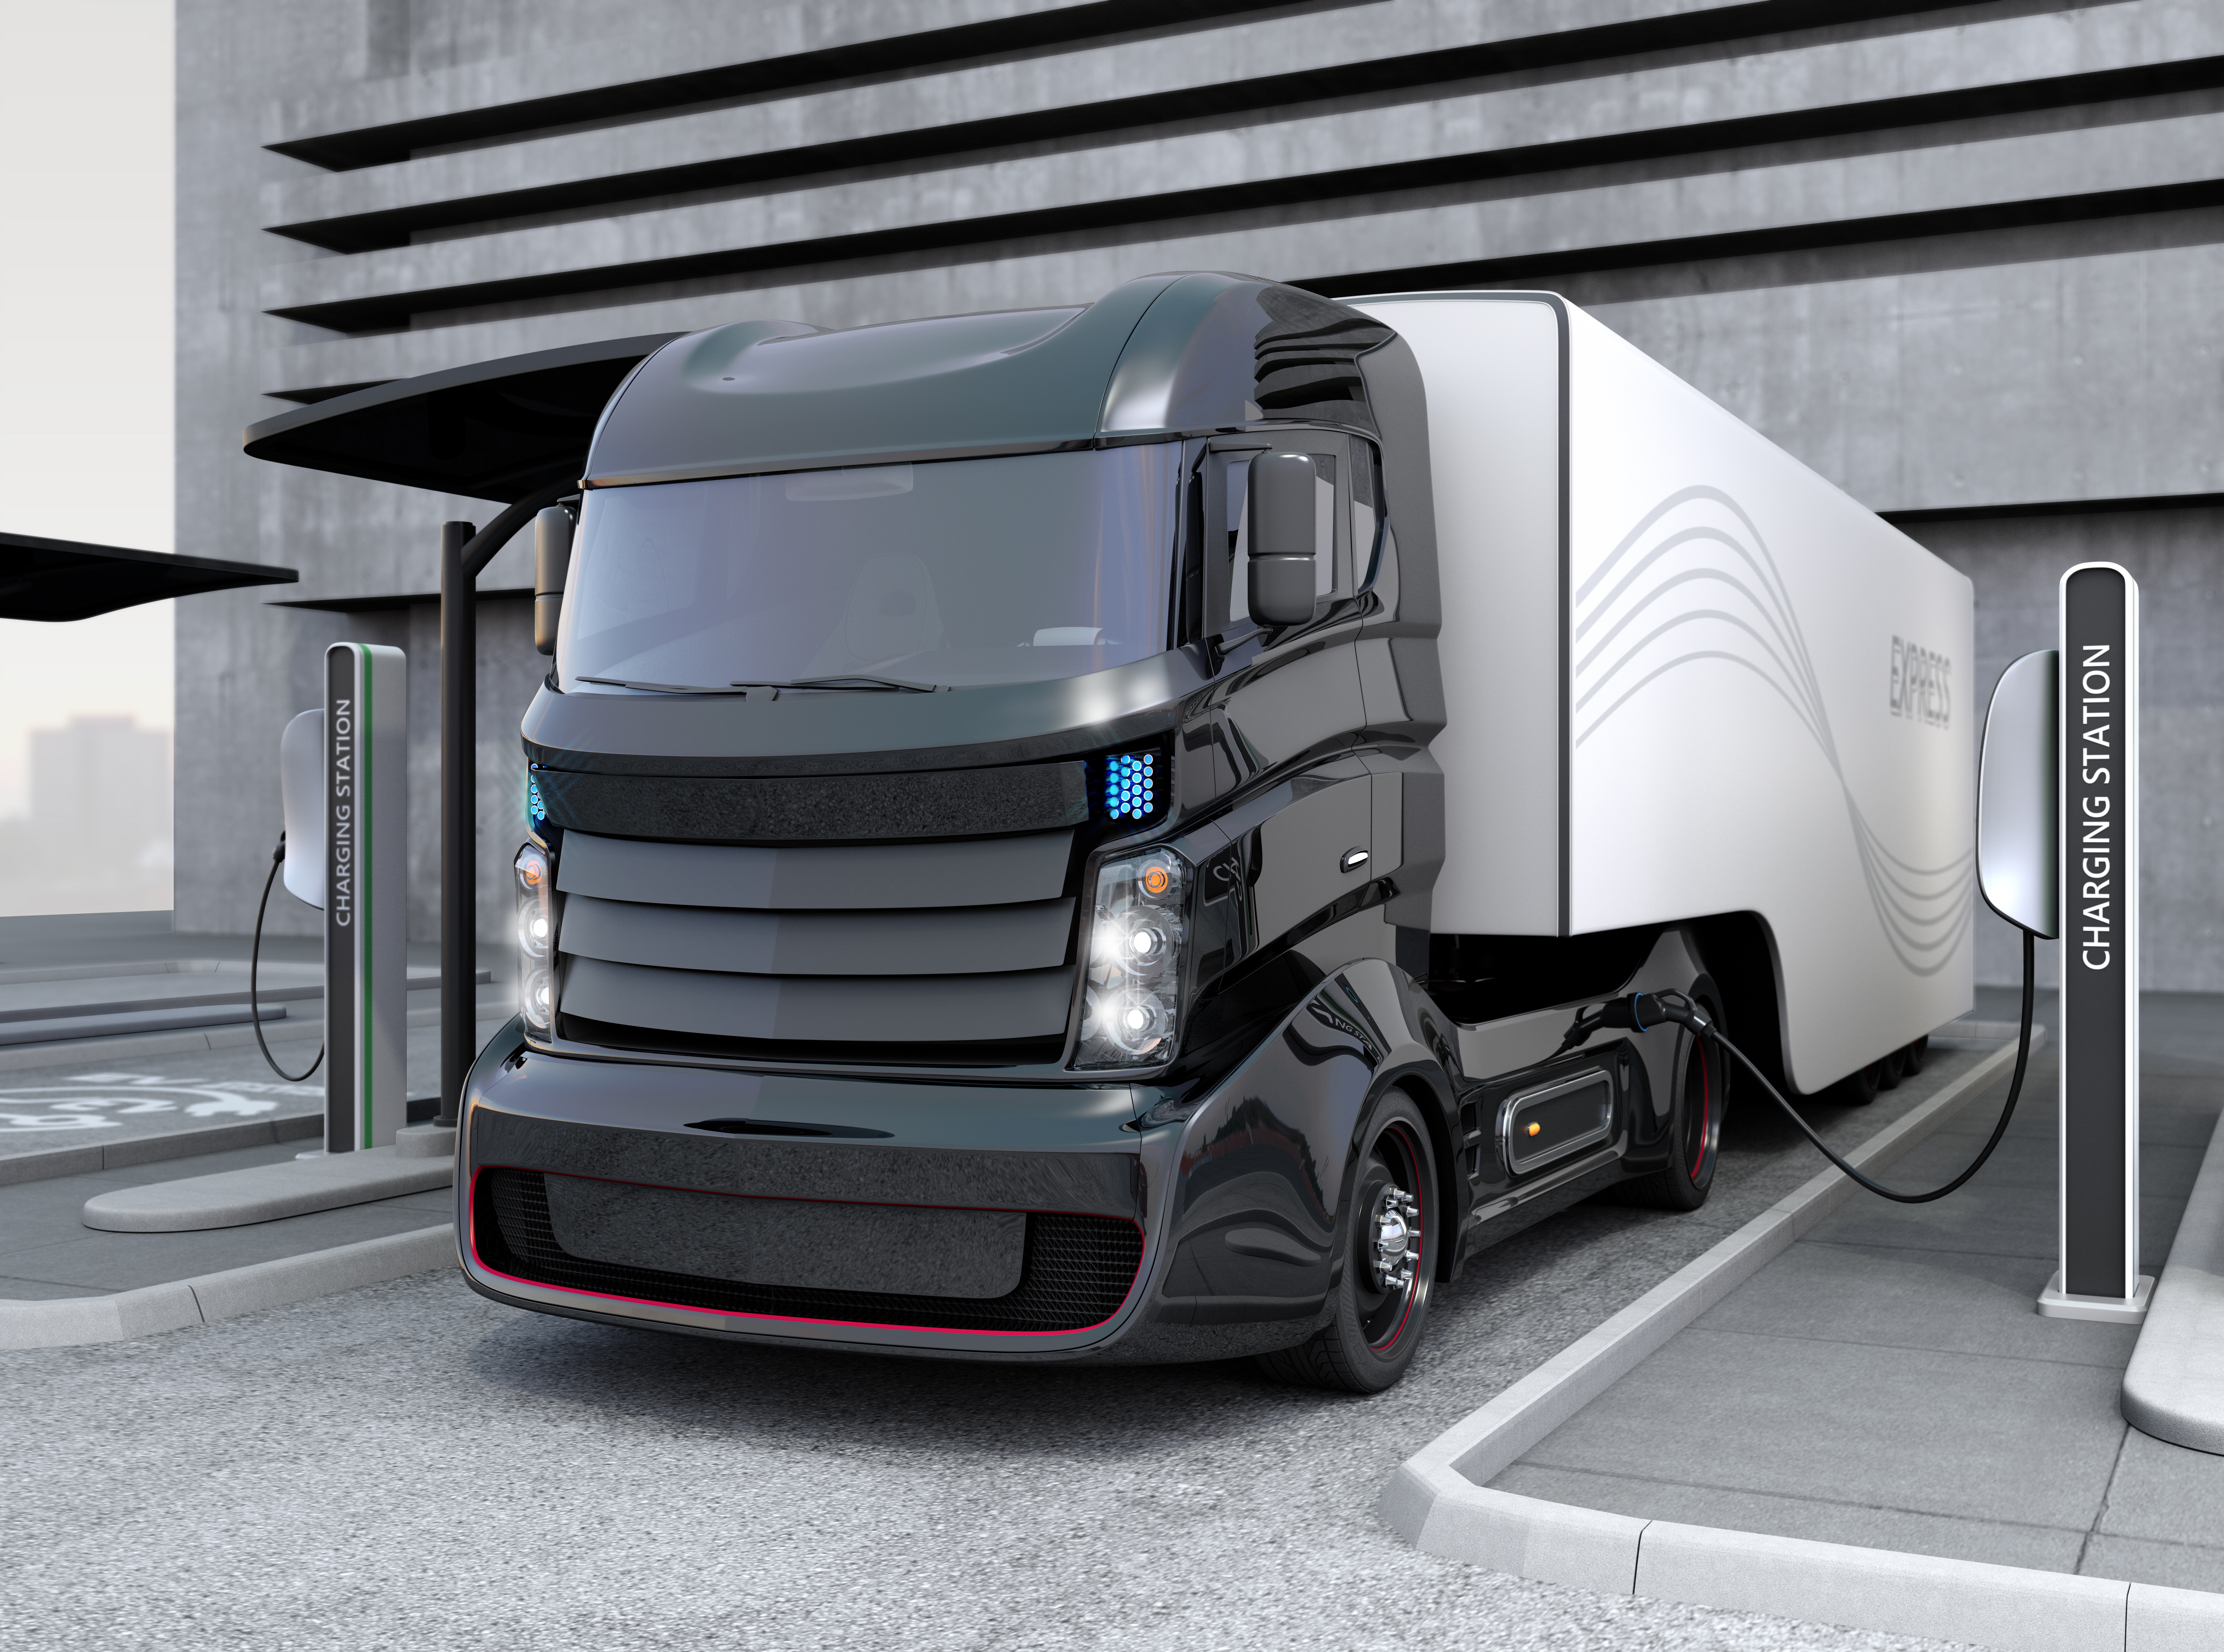 Electric long-haul trucks and fast-charging infrastructure offer a way towards zero-emissions commercial trucks. (Credit: Chesky_W/iStock)